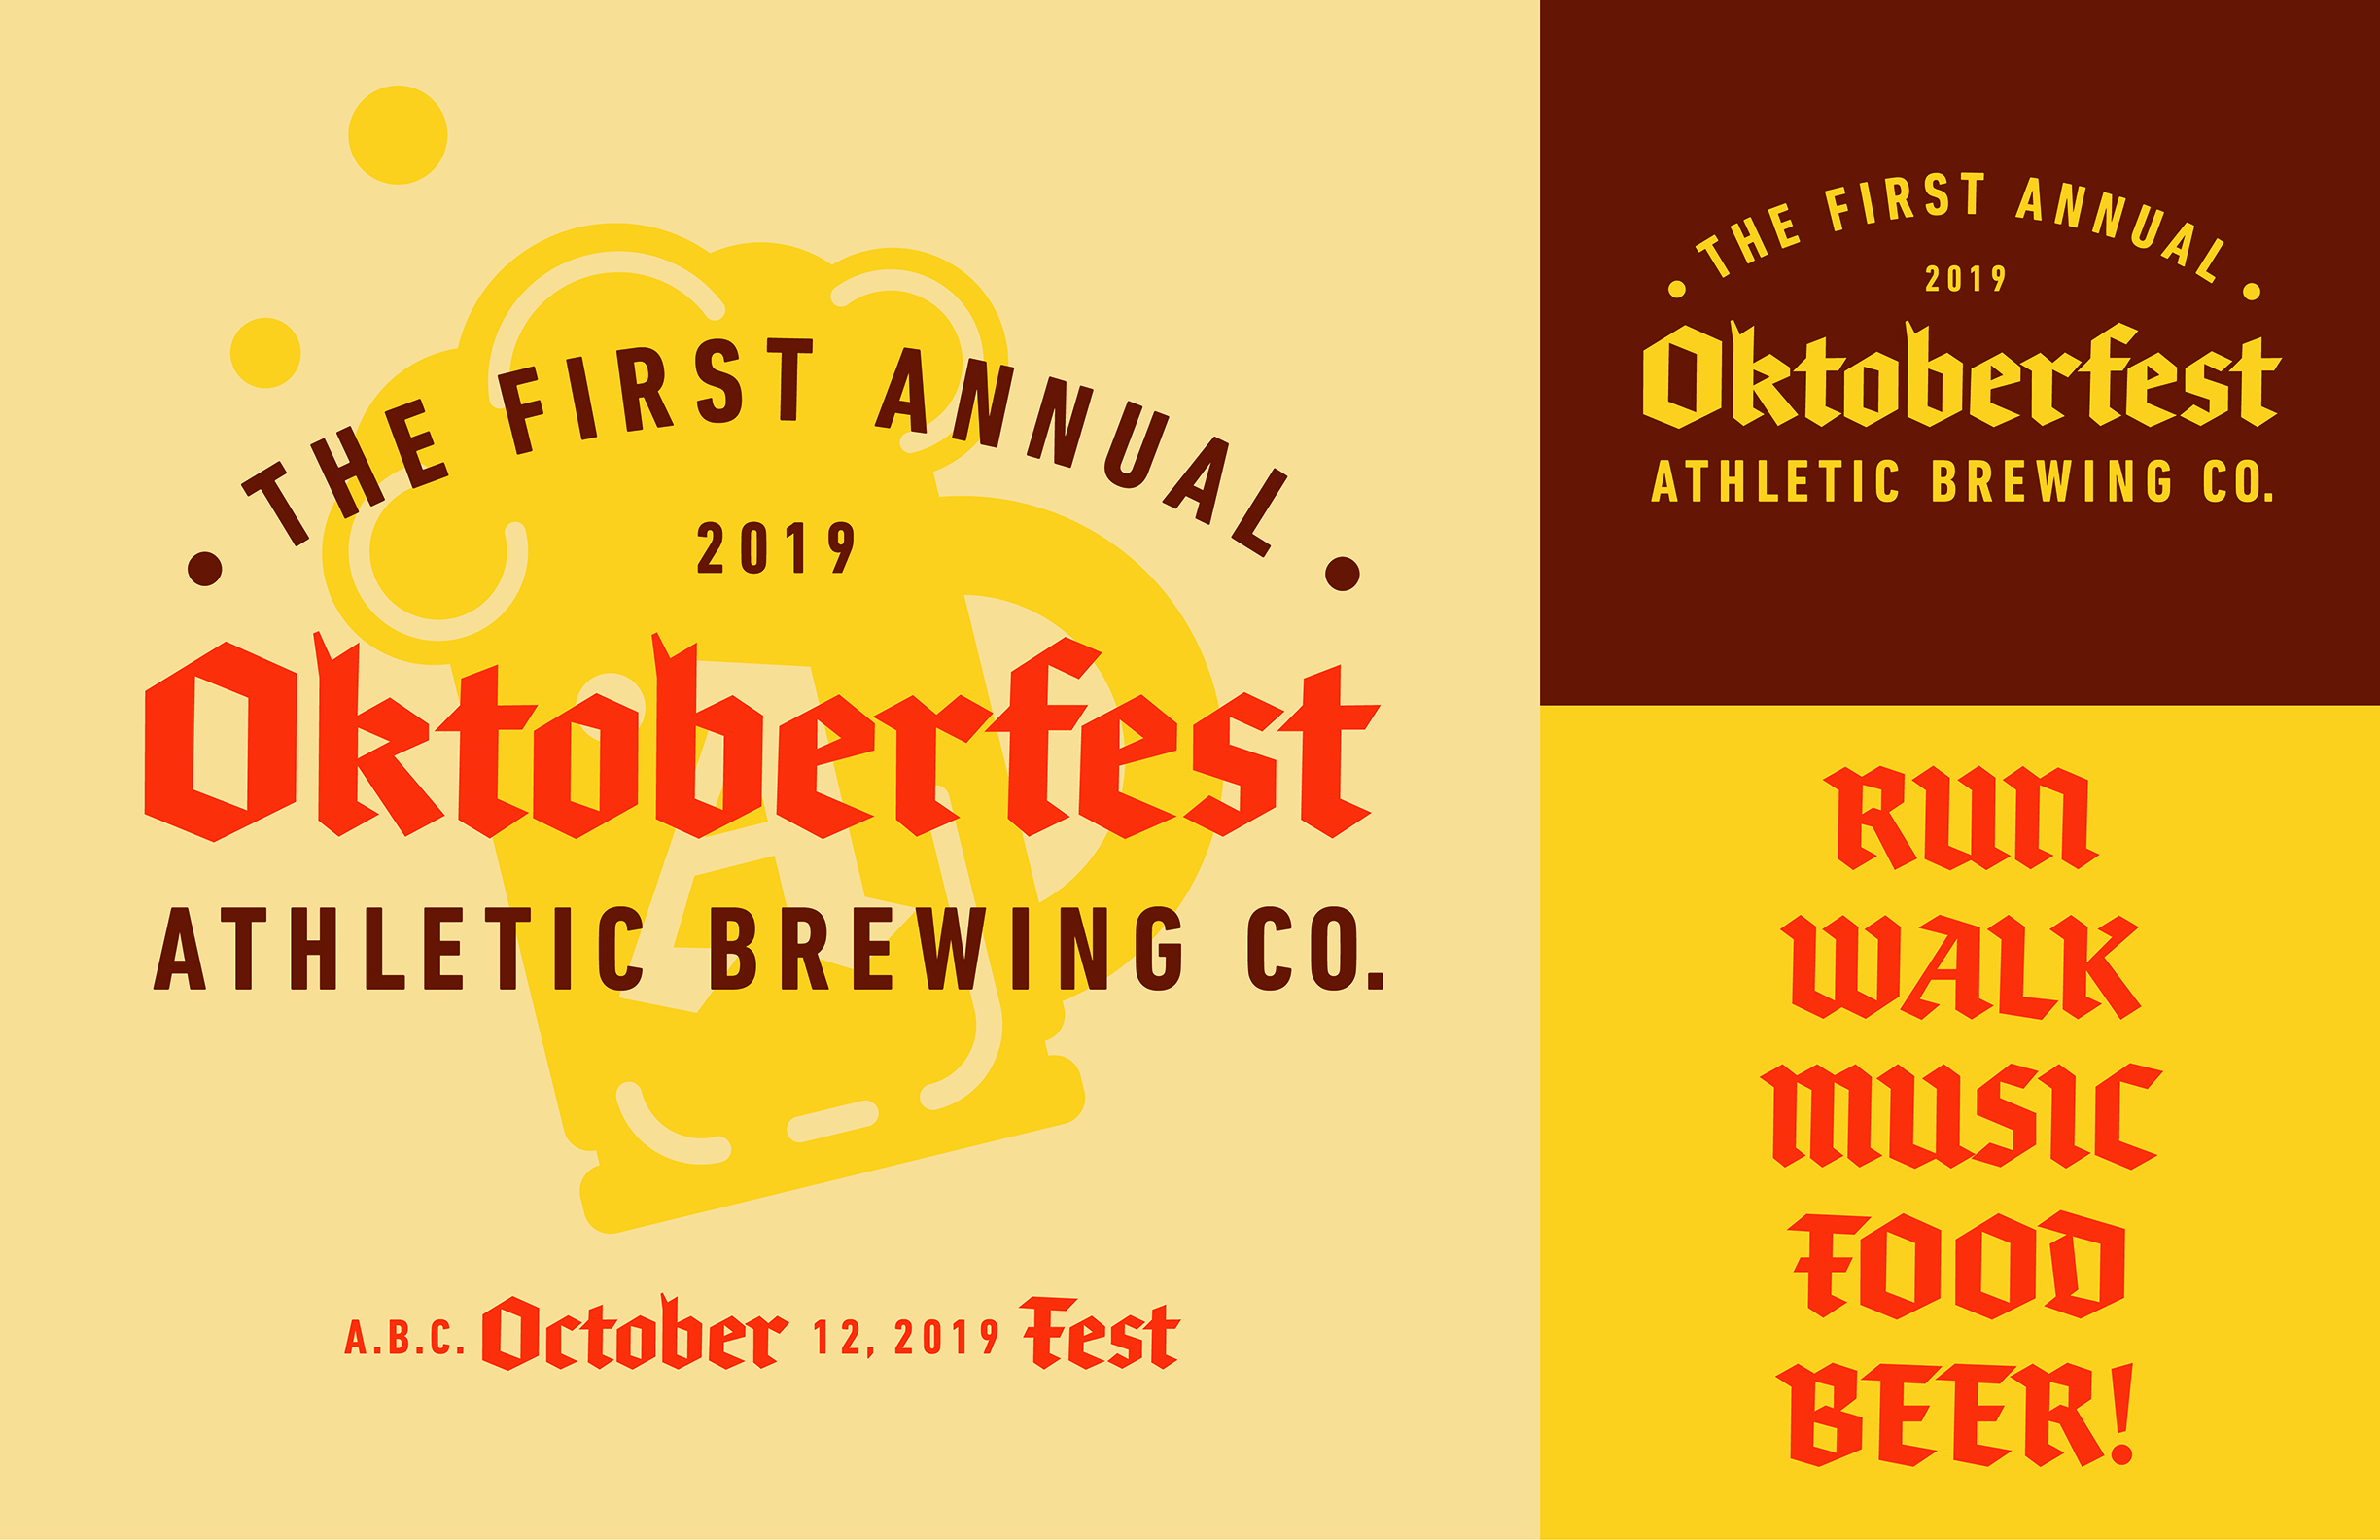 ABC_Octoberfest_Graphic-01.jpg